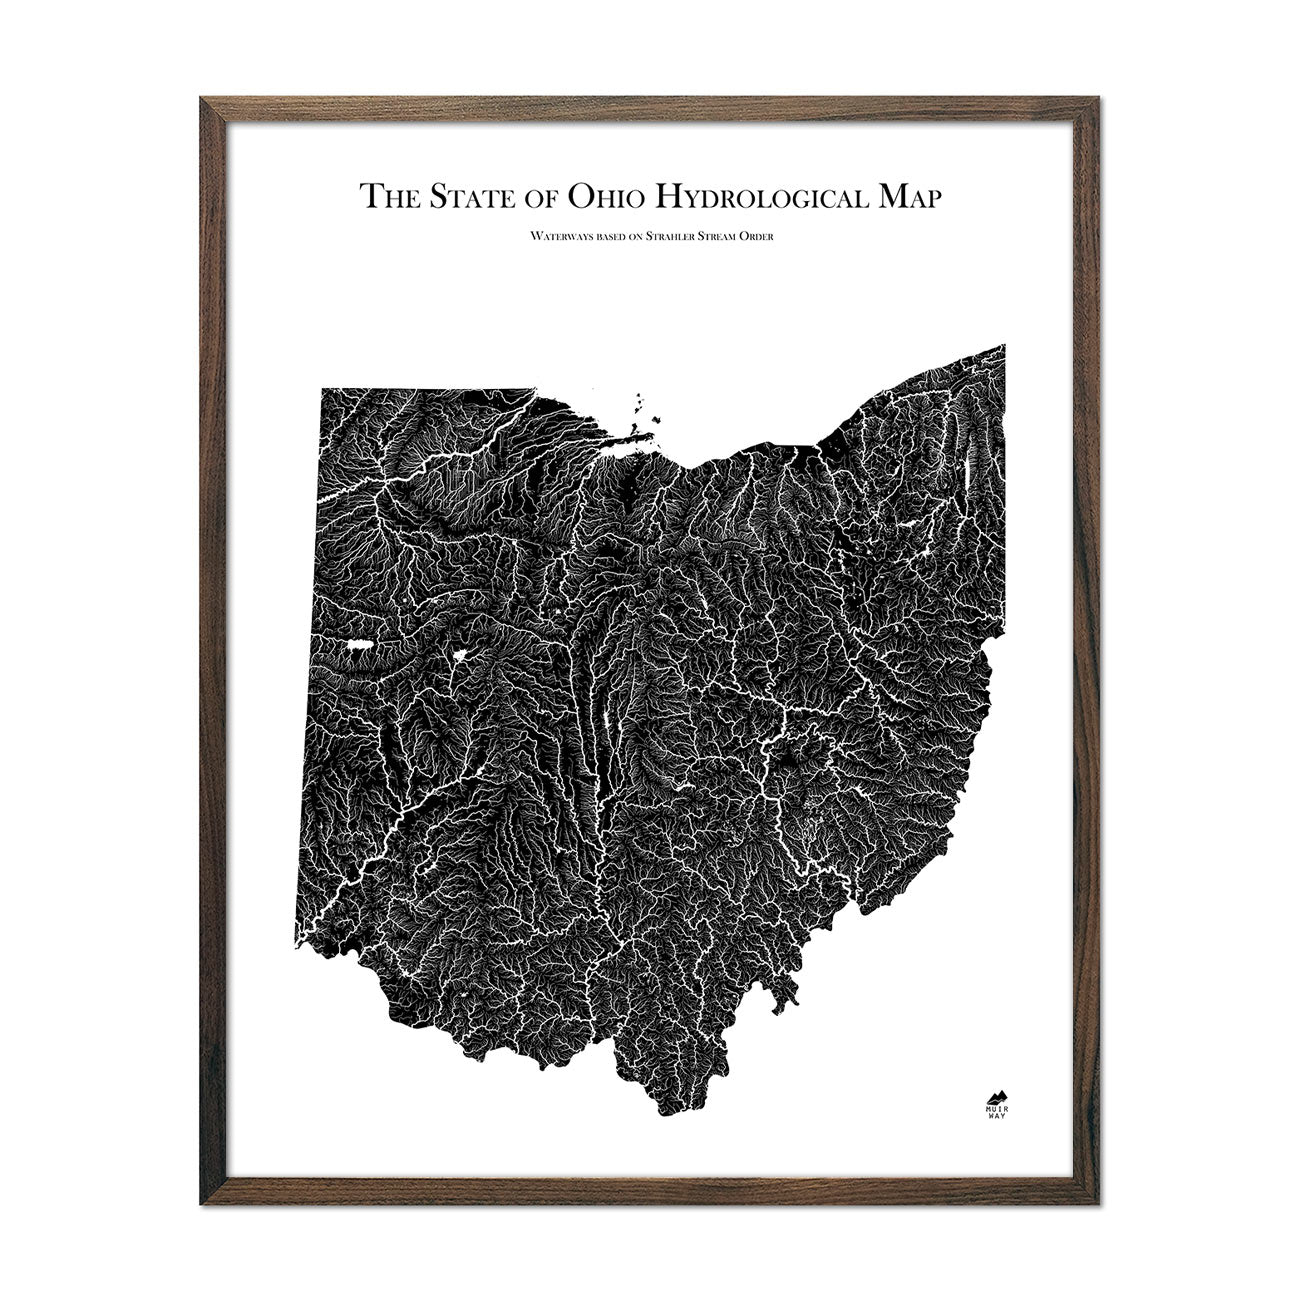 Ohio Hydrological Map